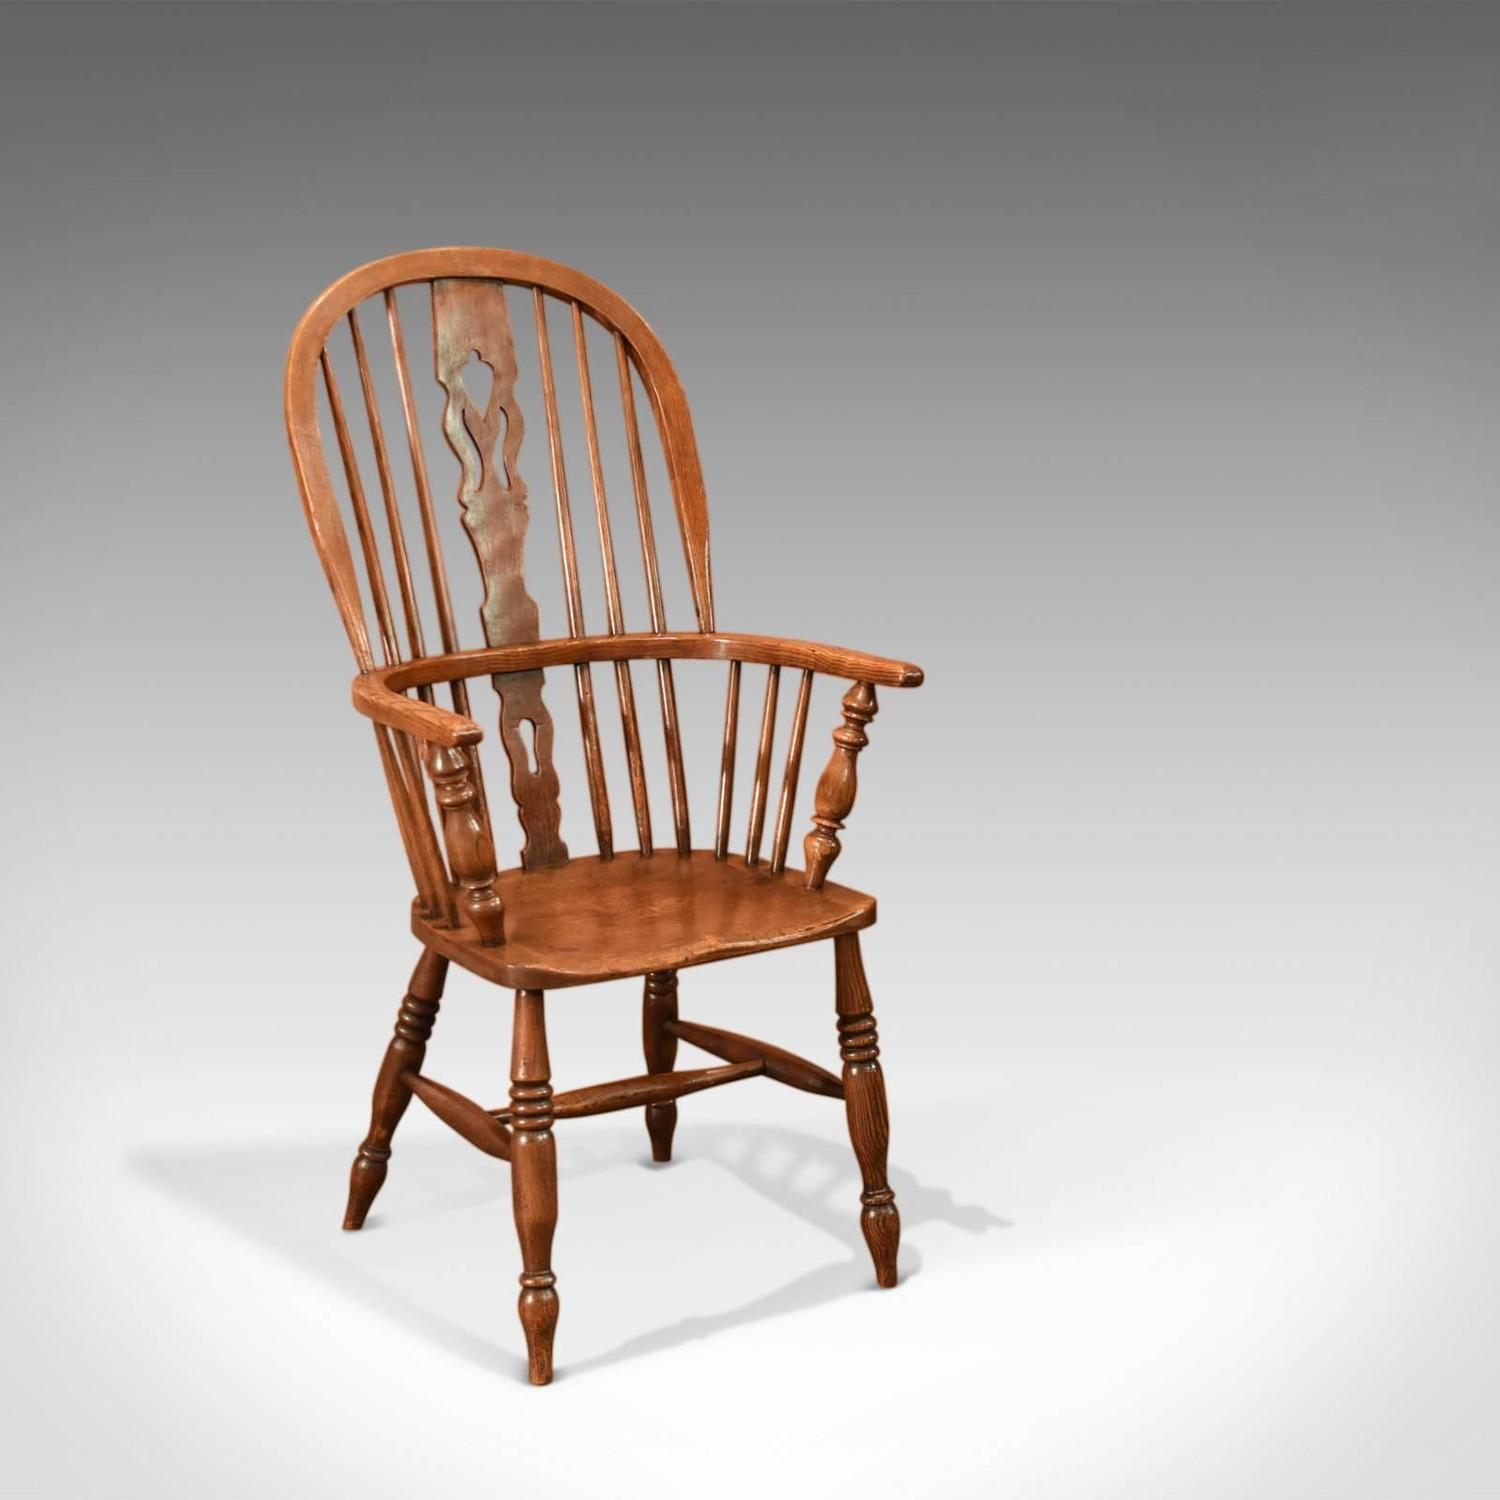 Antique Windsor Stick Back Chair Victorian circa 1870 For Sale at 1stdibs : antique windsor chair - Cheerinfomania.Com